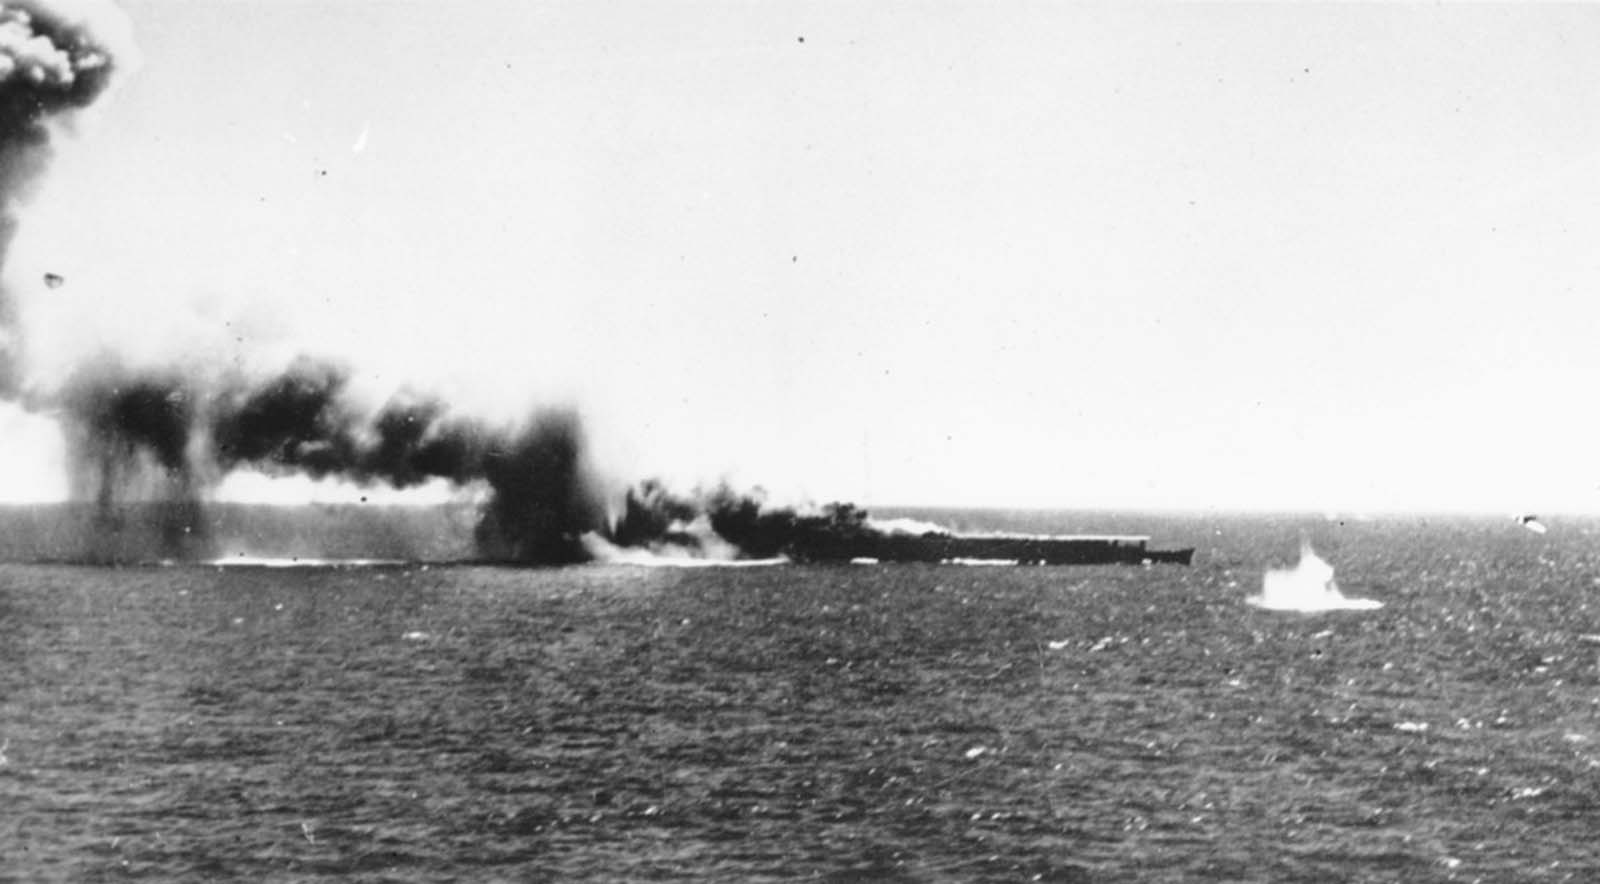 A Japanese aircraft carrier is bombed by a U.S. Navy plane in the Battle of the Coral Sea, in May of 1942. This was the first naval battle in history in which neither side's ships ever sighted or fired directly upon the other.